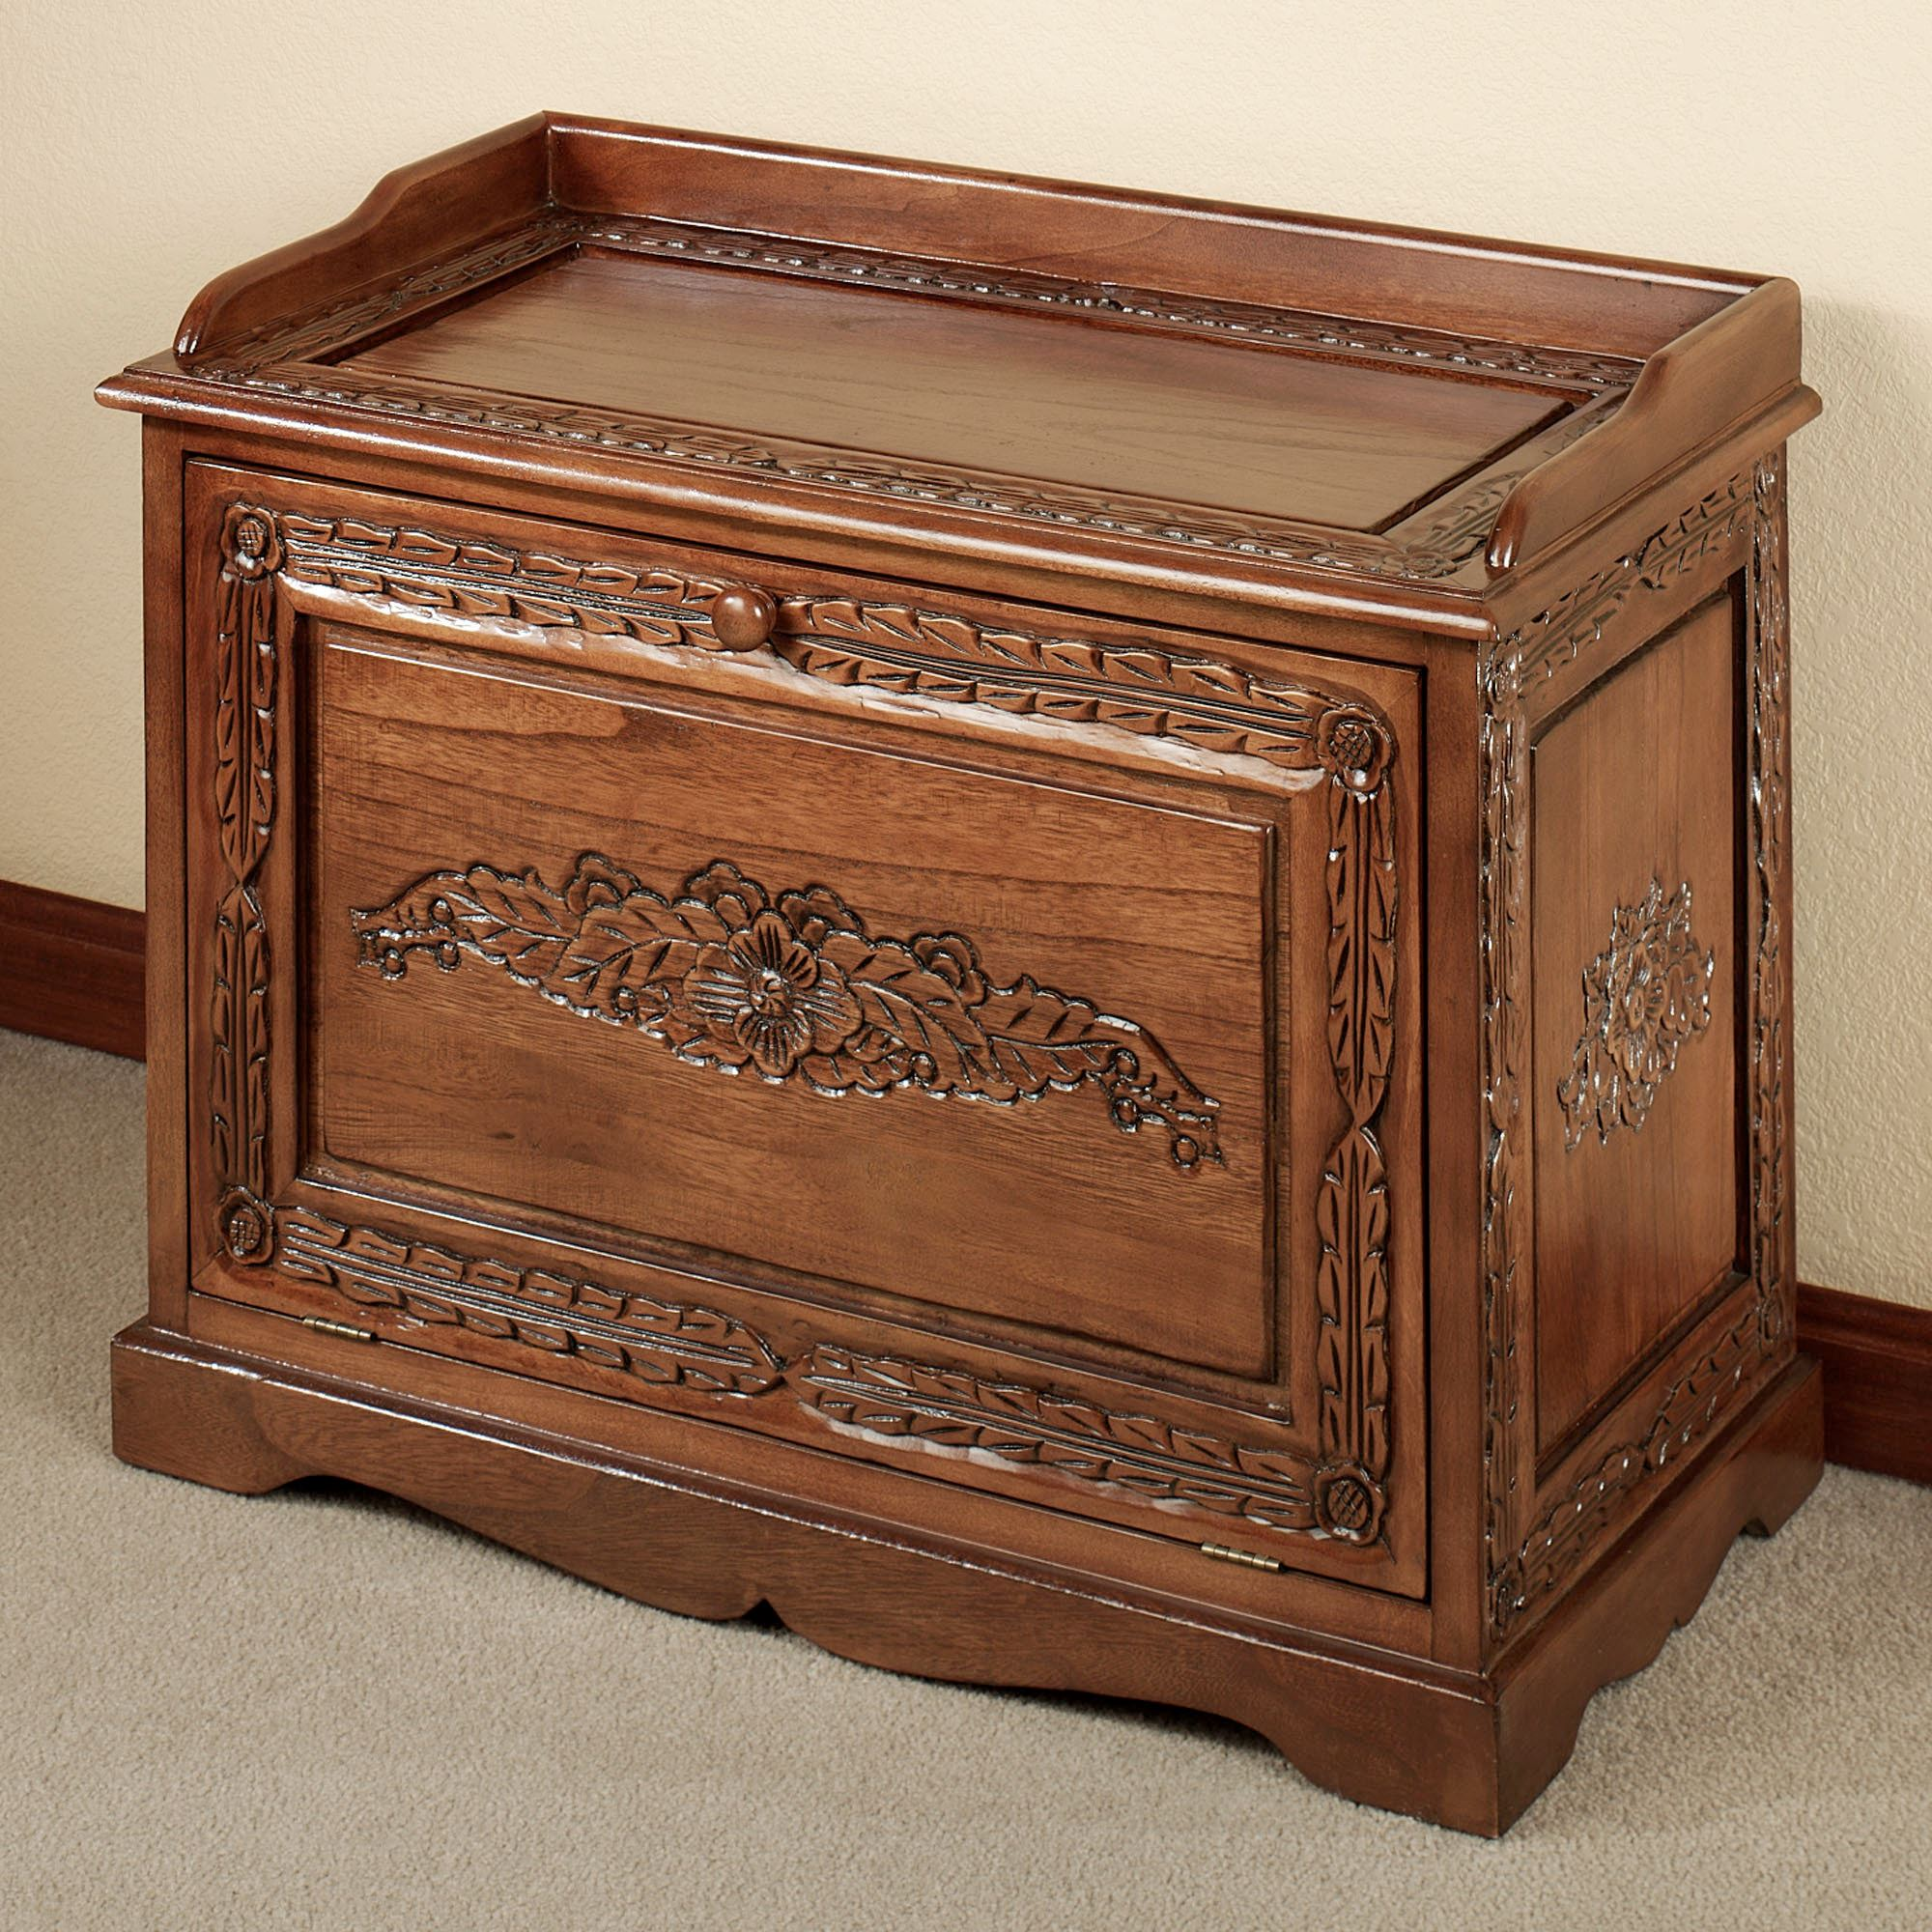 Victoriana Shoe Storage Bench Natural Cherry